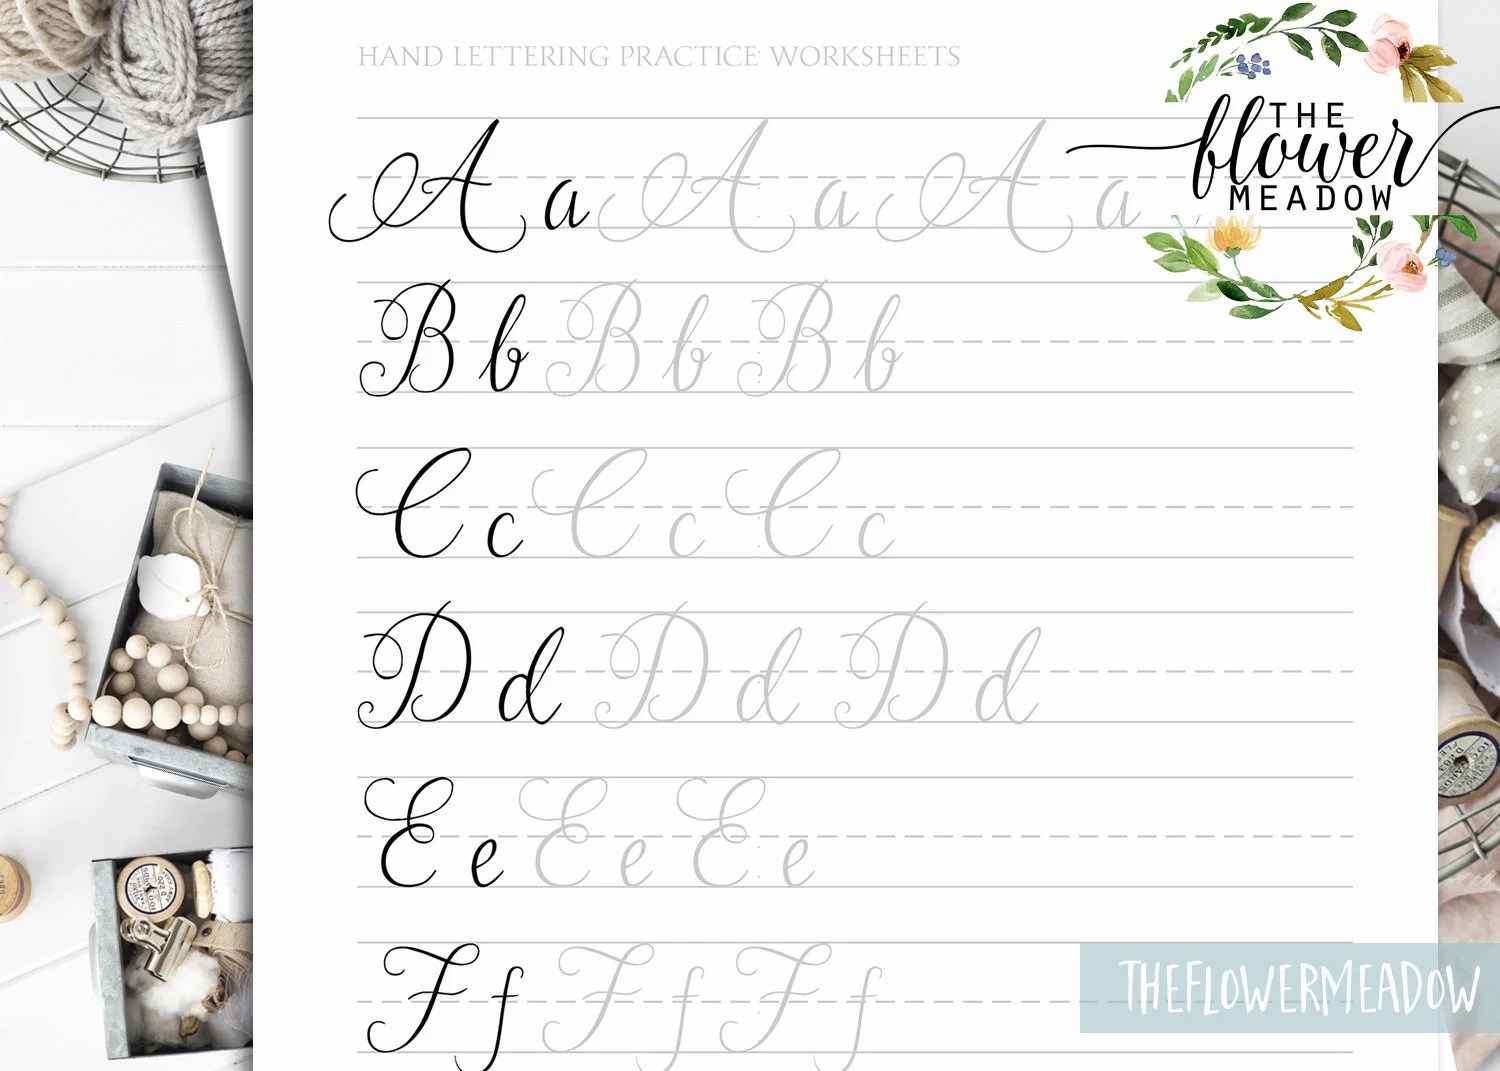 Calligraphy Tutorial Learn Calligraphy Hand Lettering Guide Modern Lettering Worksheets